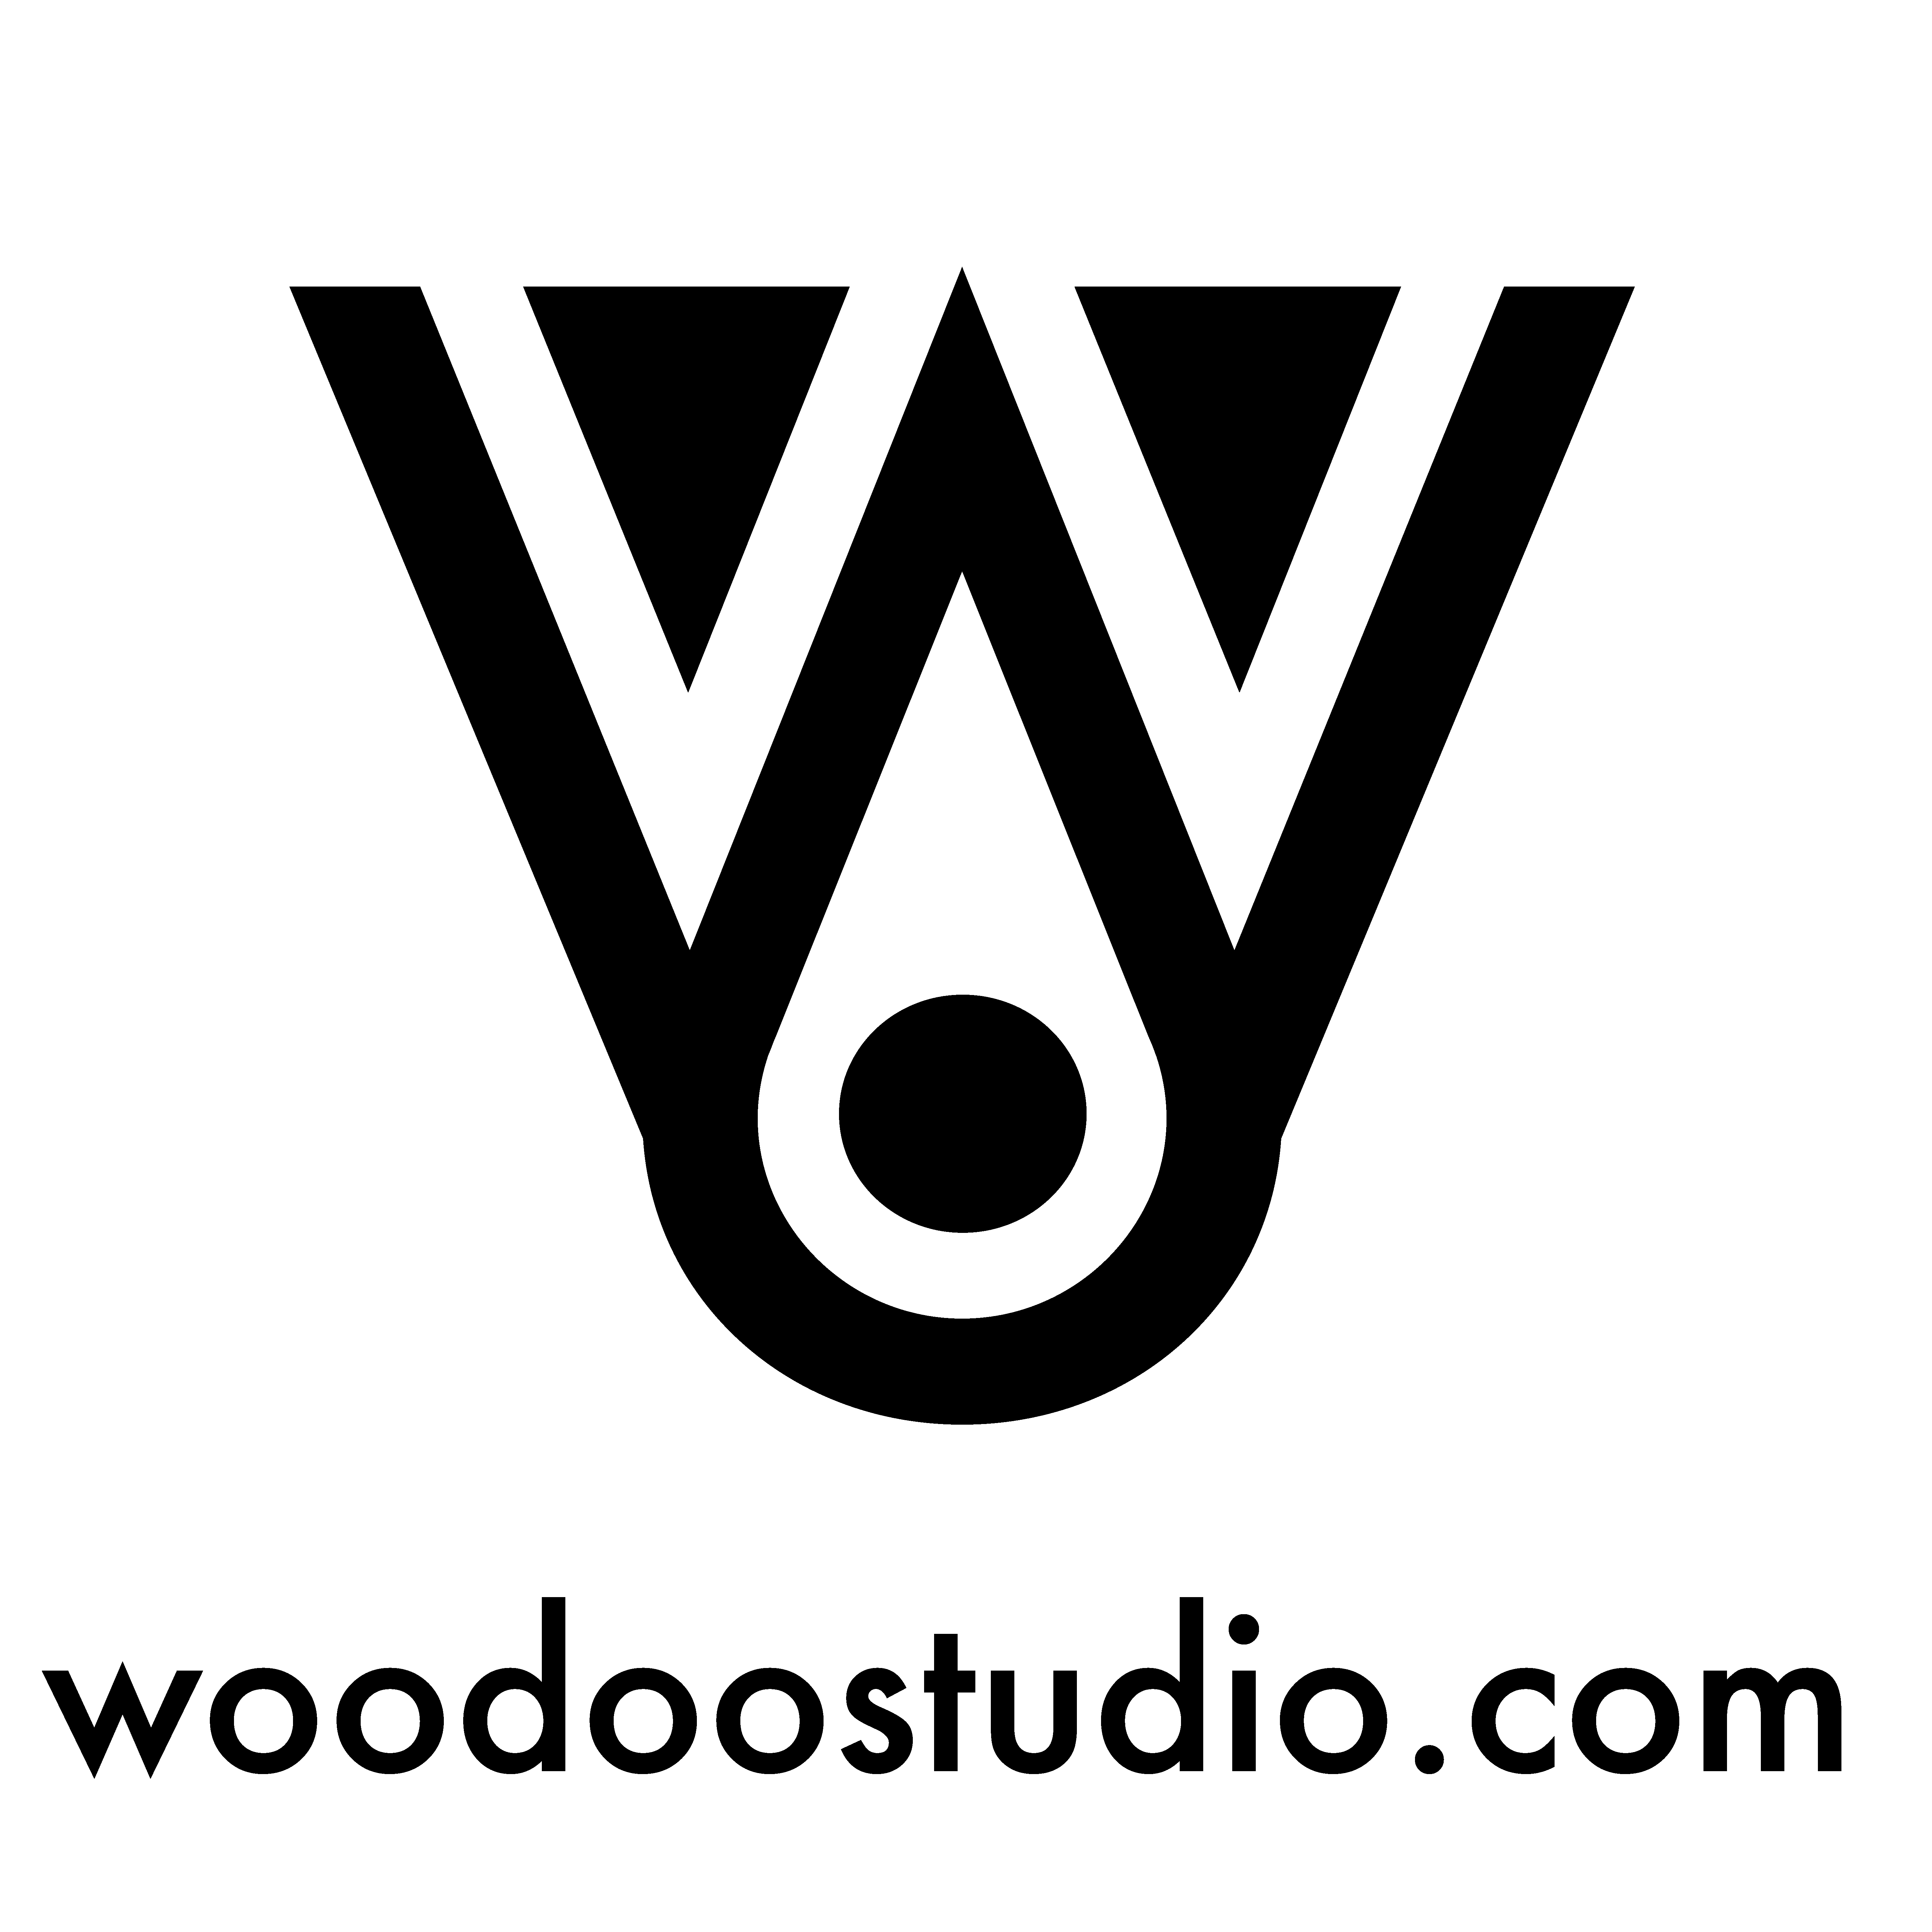 woodoo studio logo-01